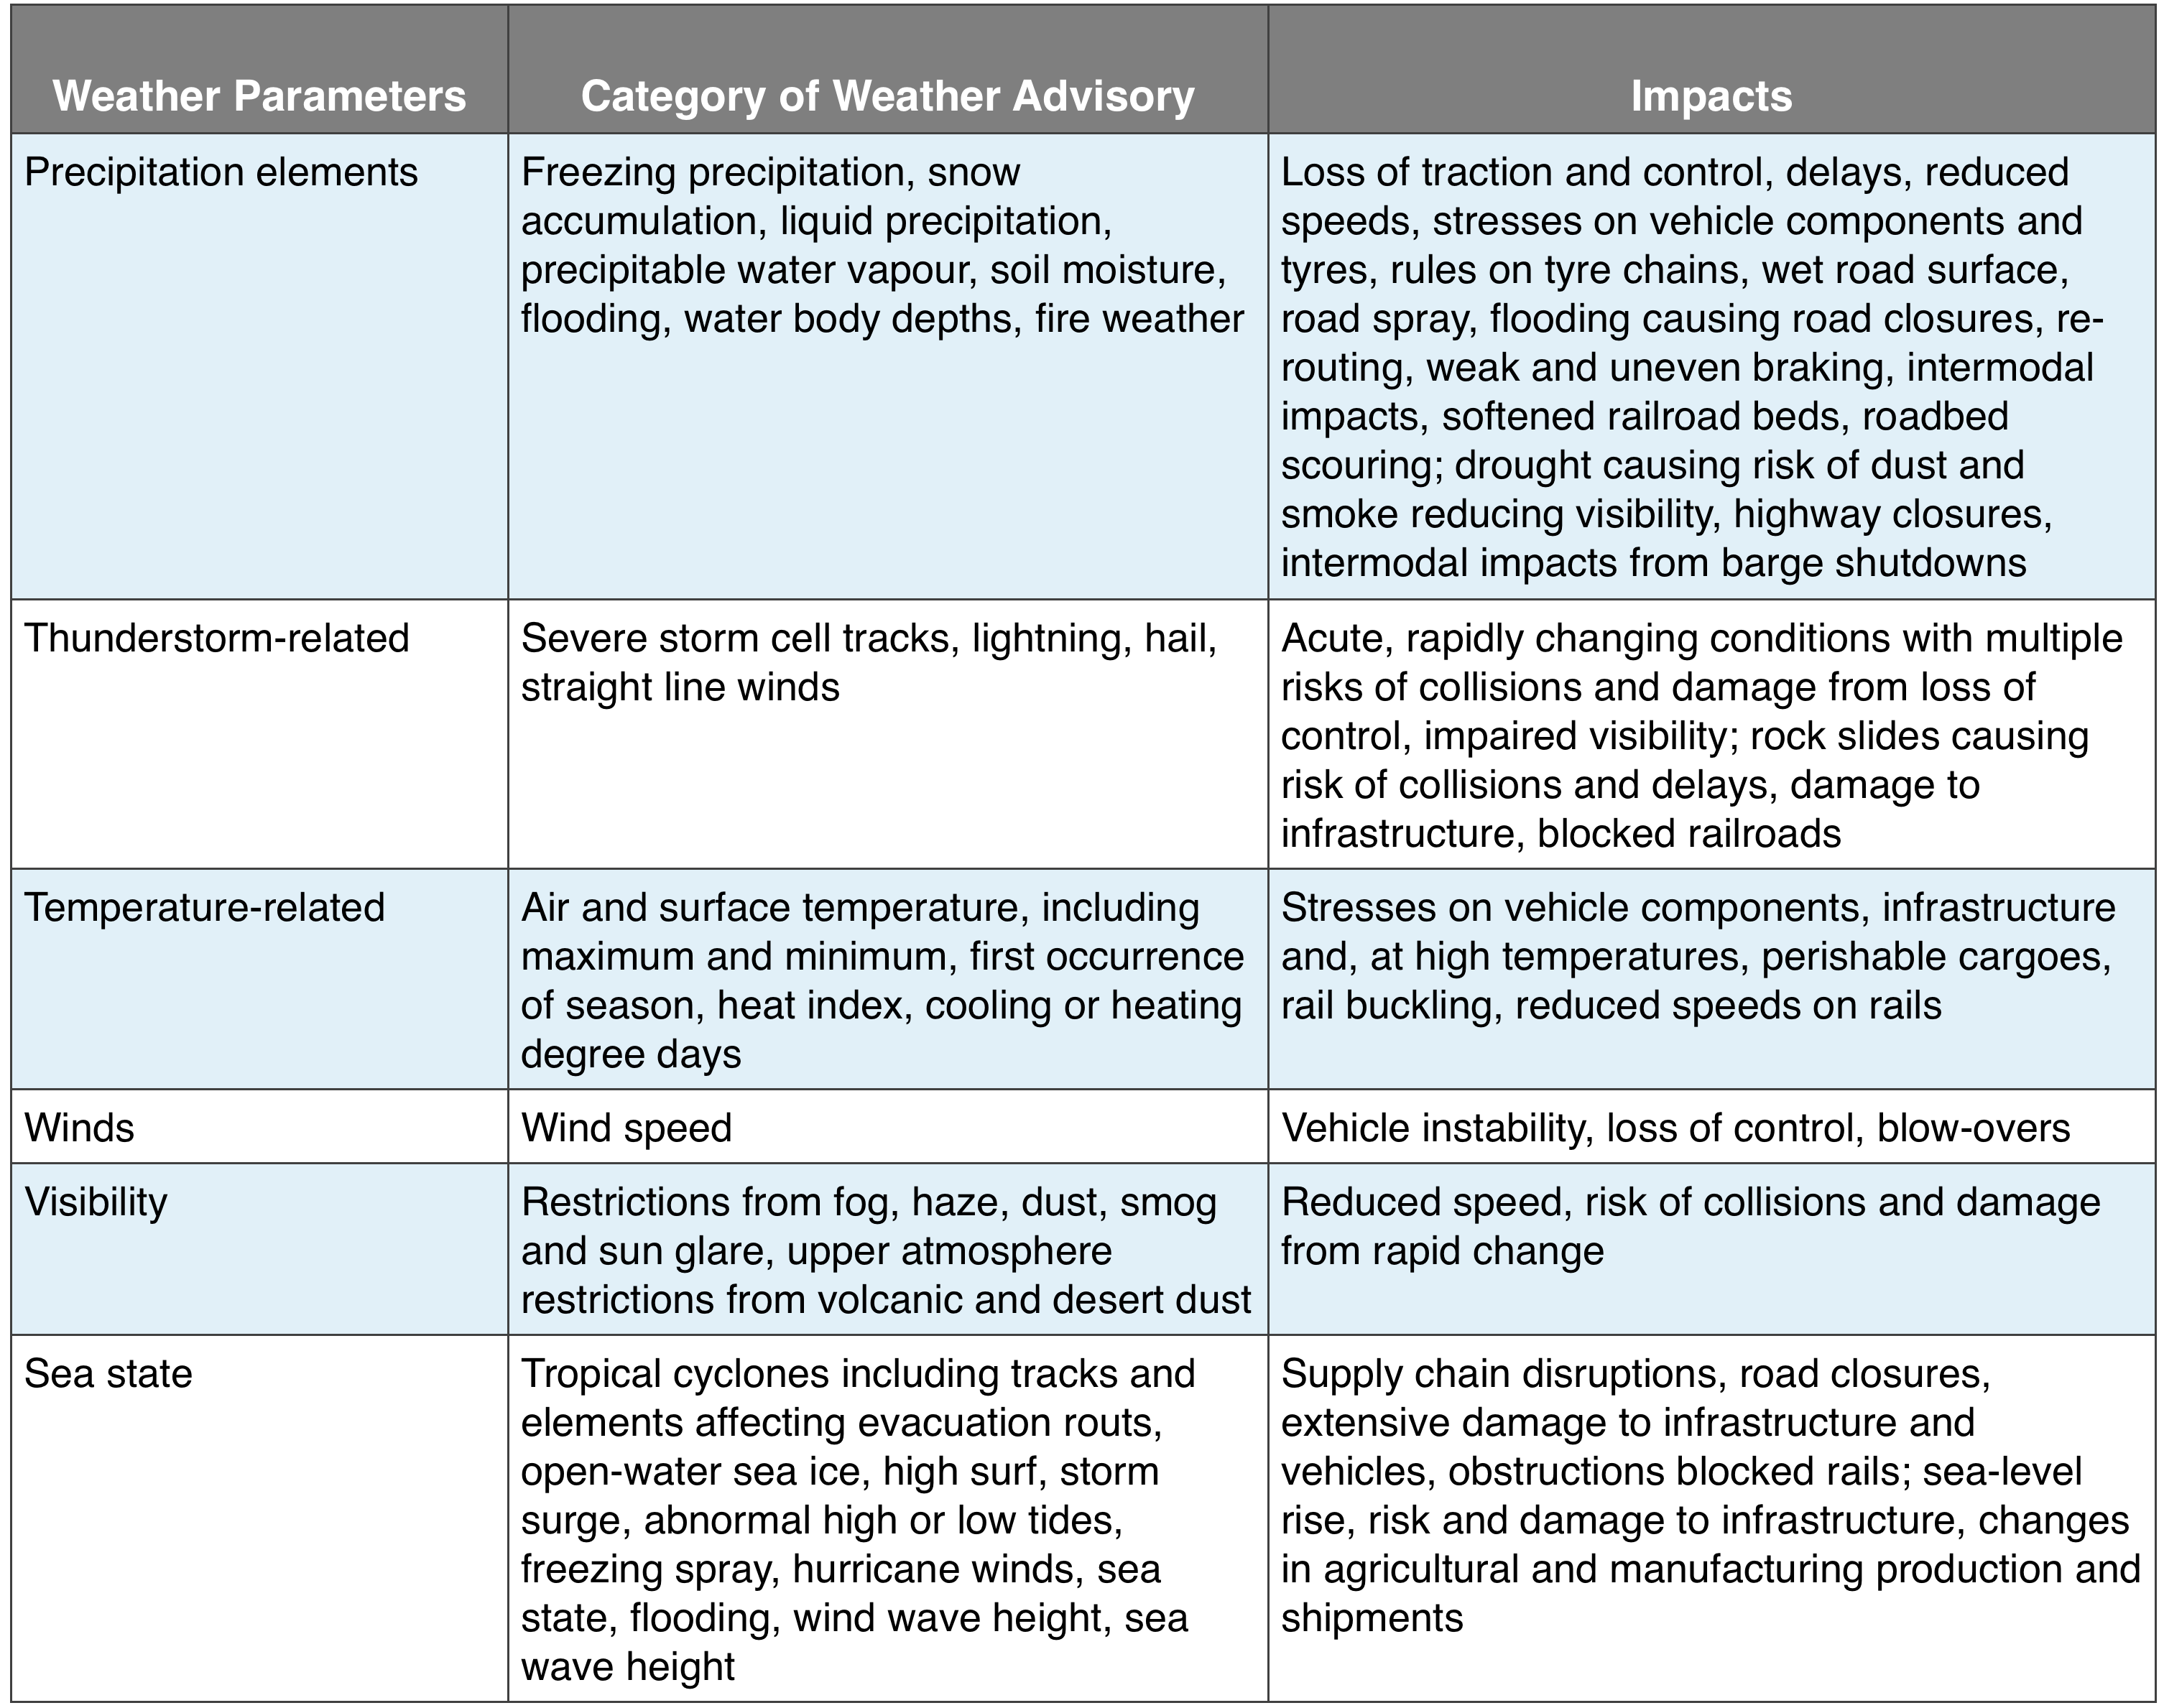 Weather Parameters for Transportation